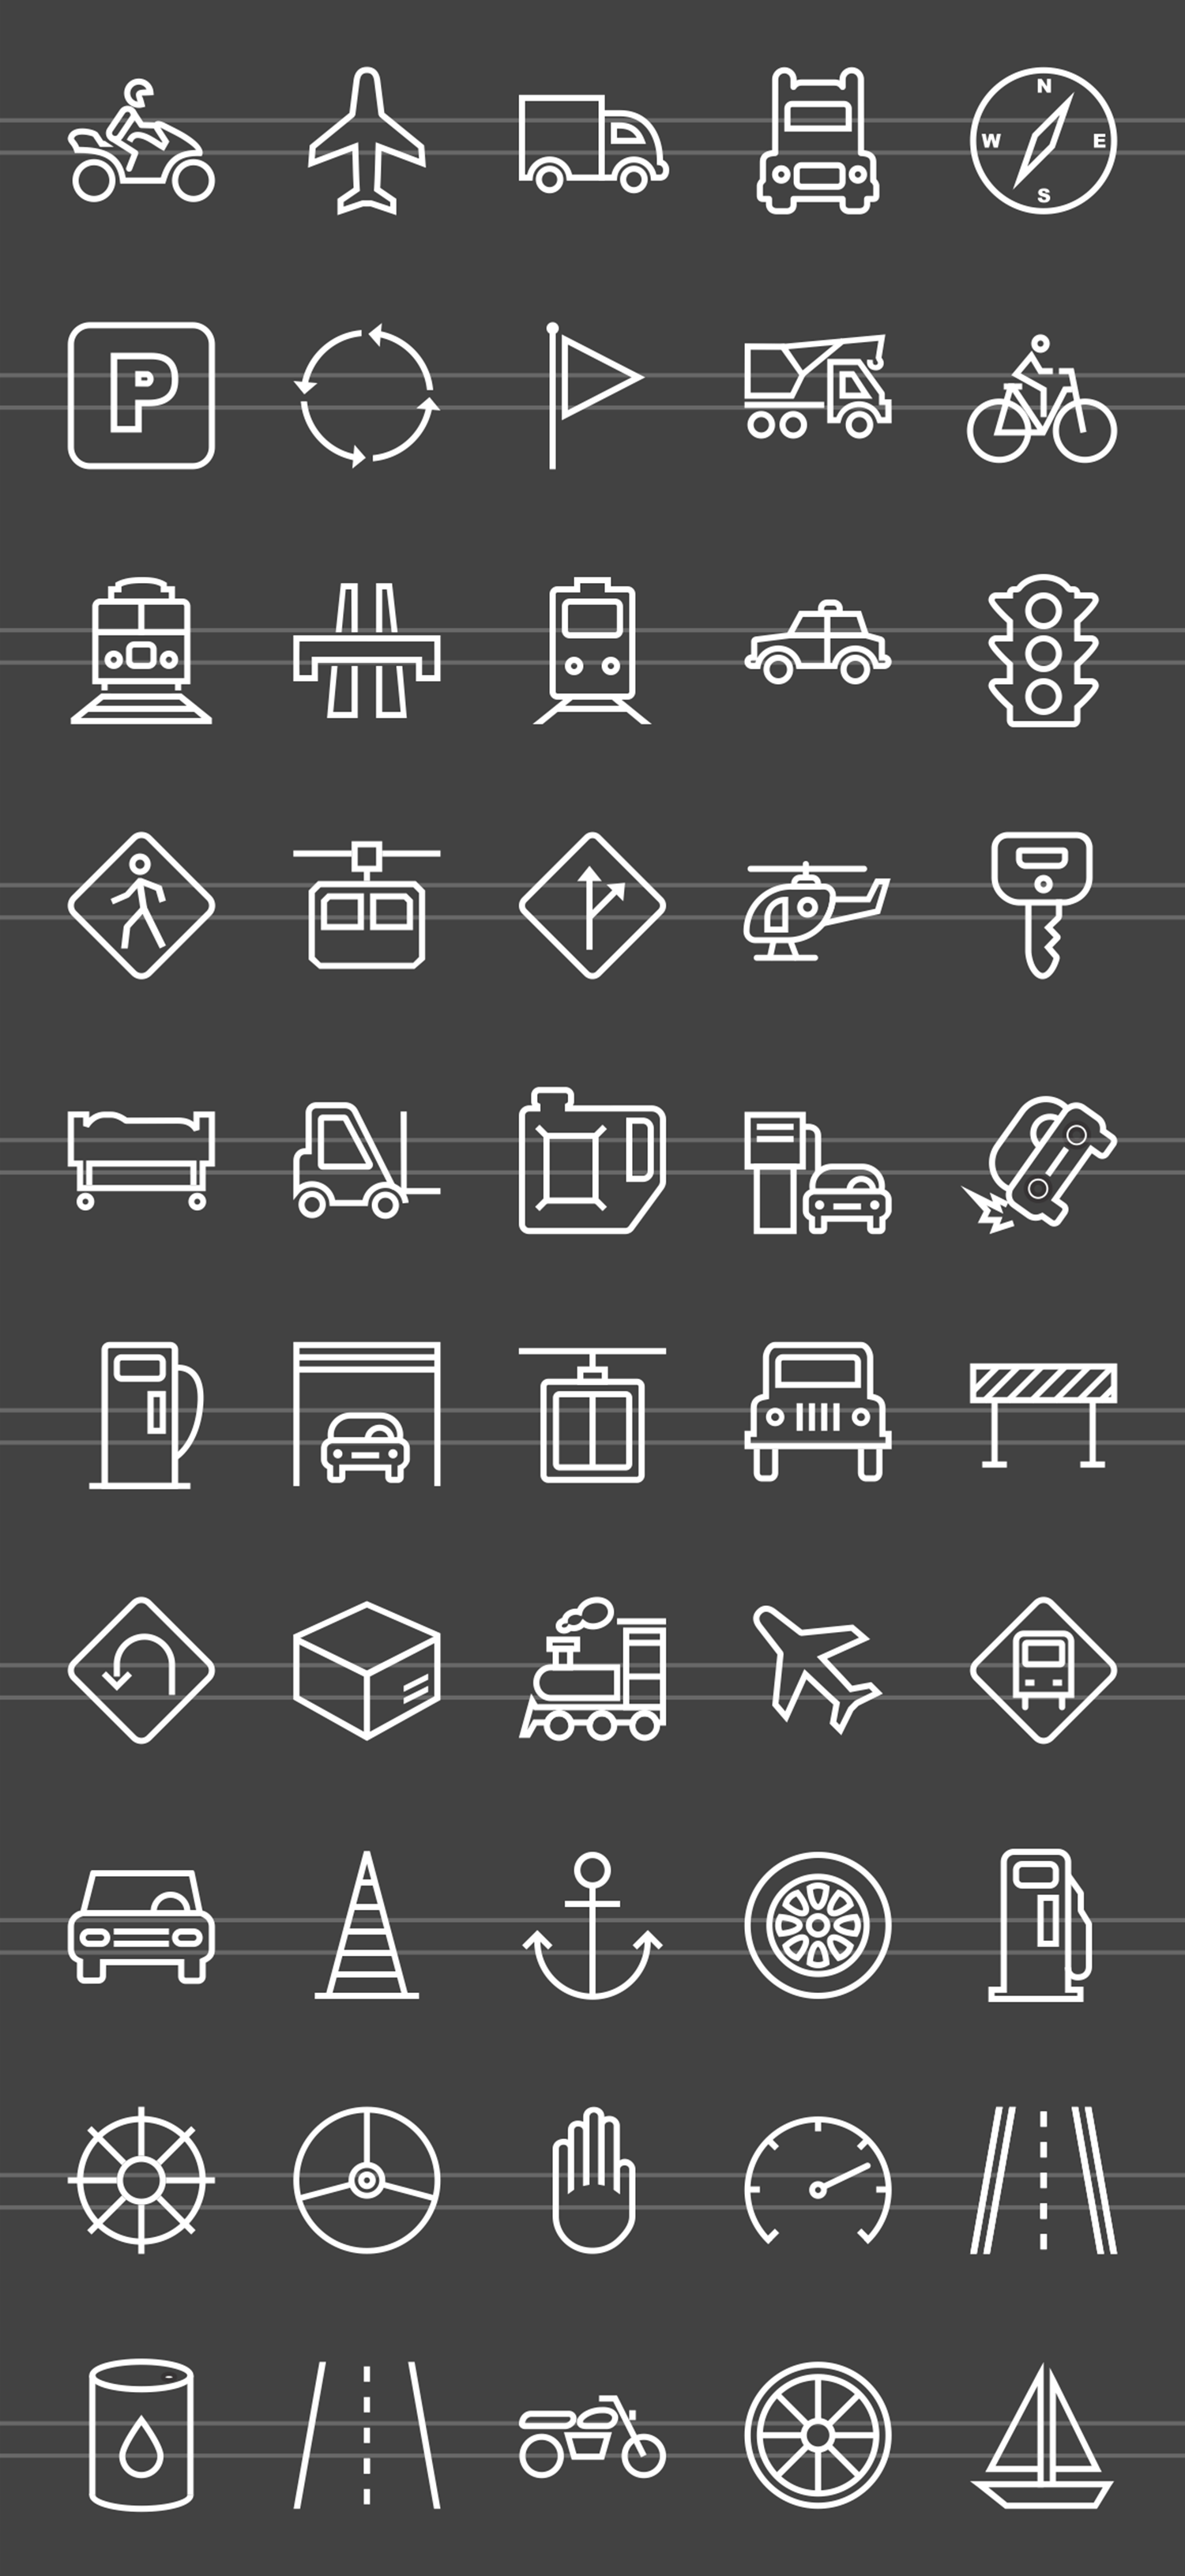 50 Transportation Line Inverted Icons example image 2